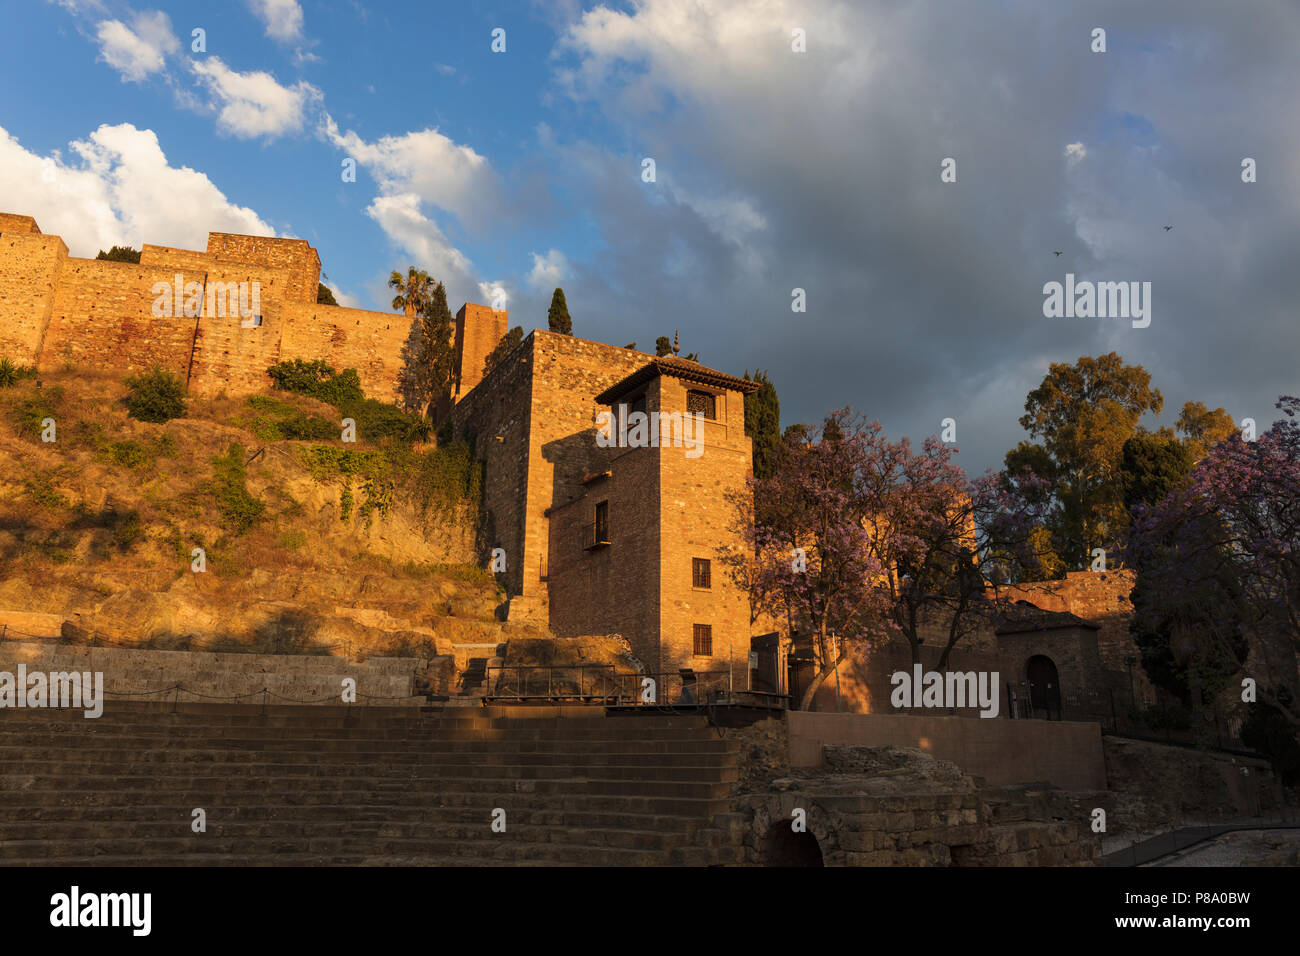 Malaga, Costa del Sol, Malaga Province, Andalusia, southern Spain.  The Moorish Alcazaba, late afternoon. - Stock Image